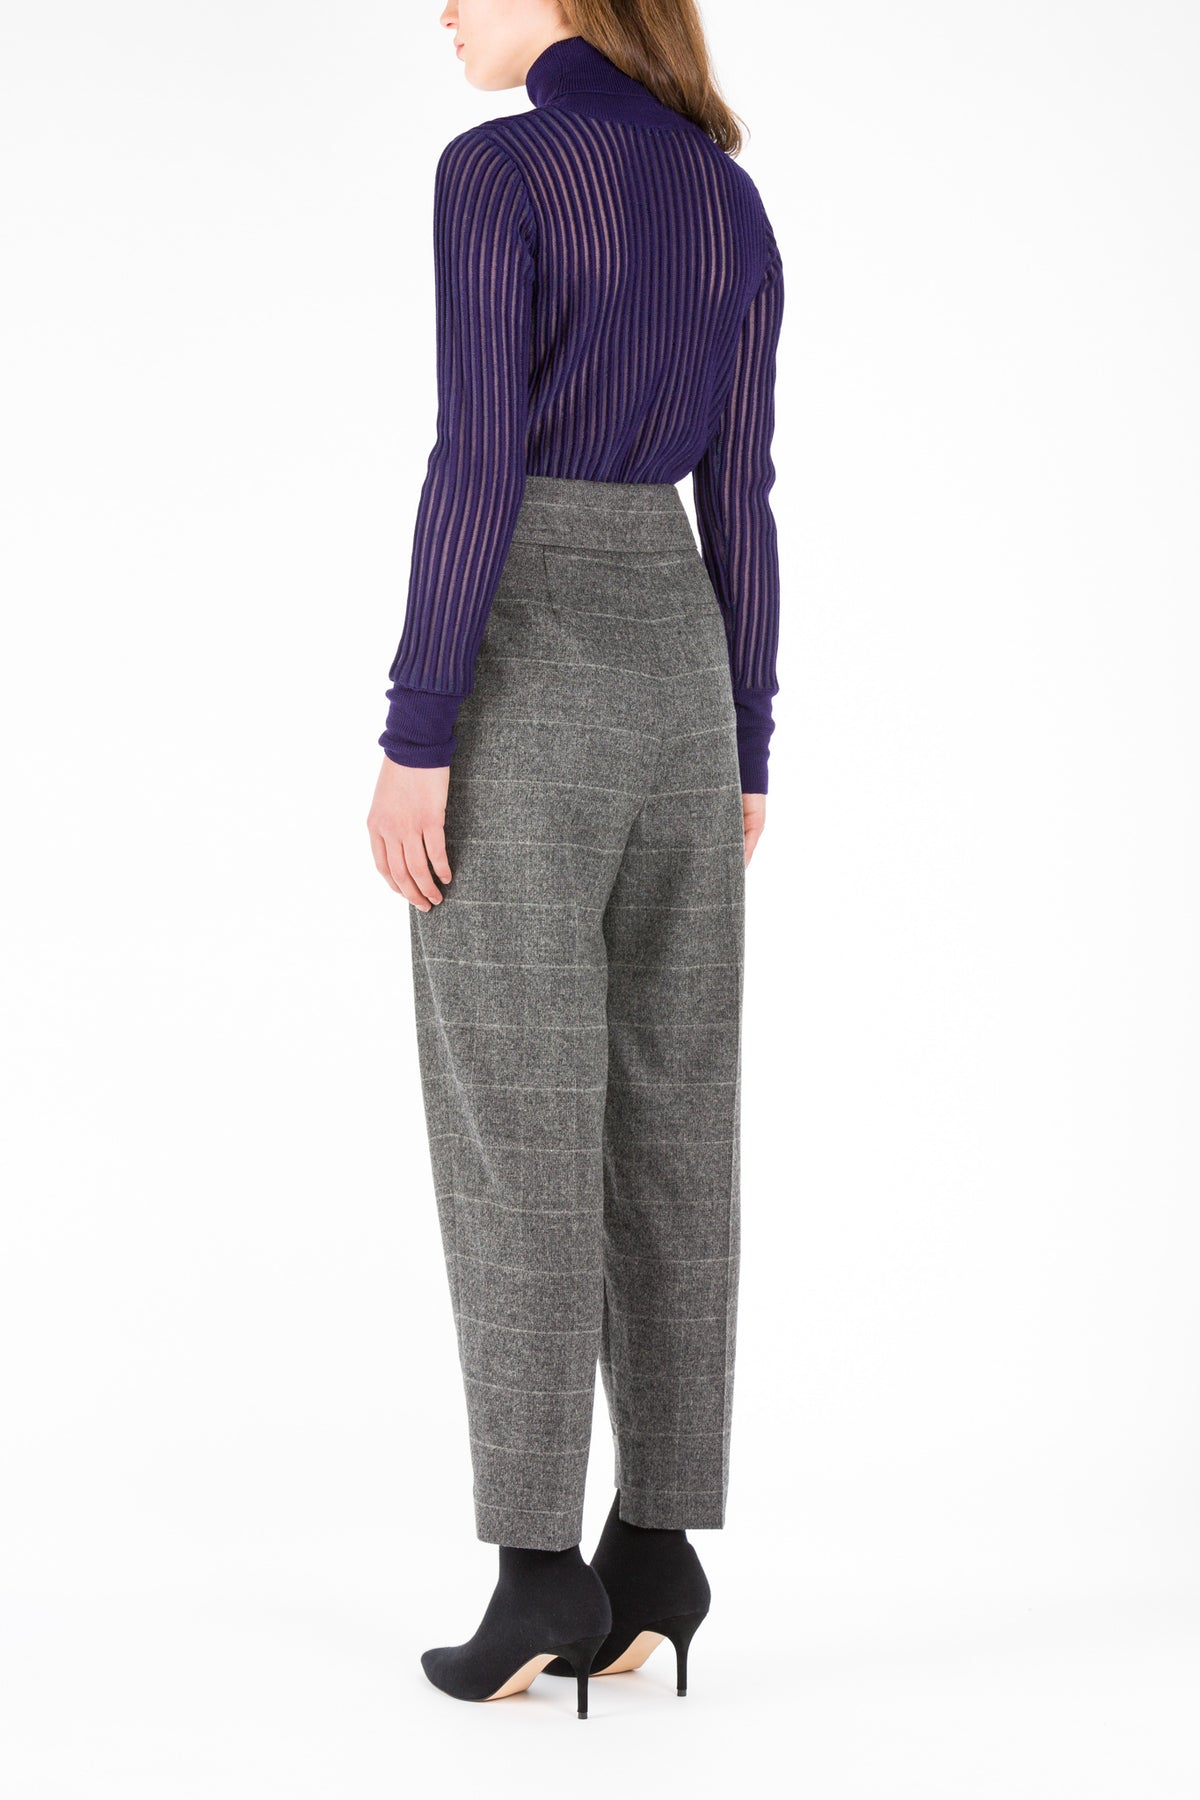 Turn | Pants | Grey Melange